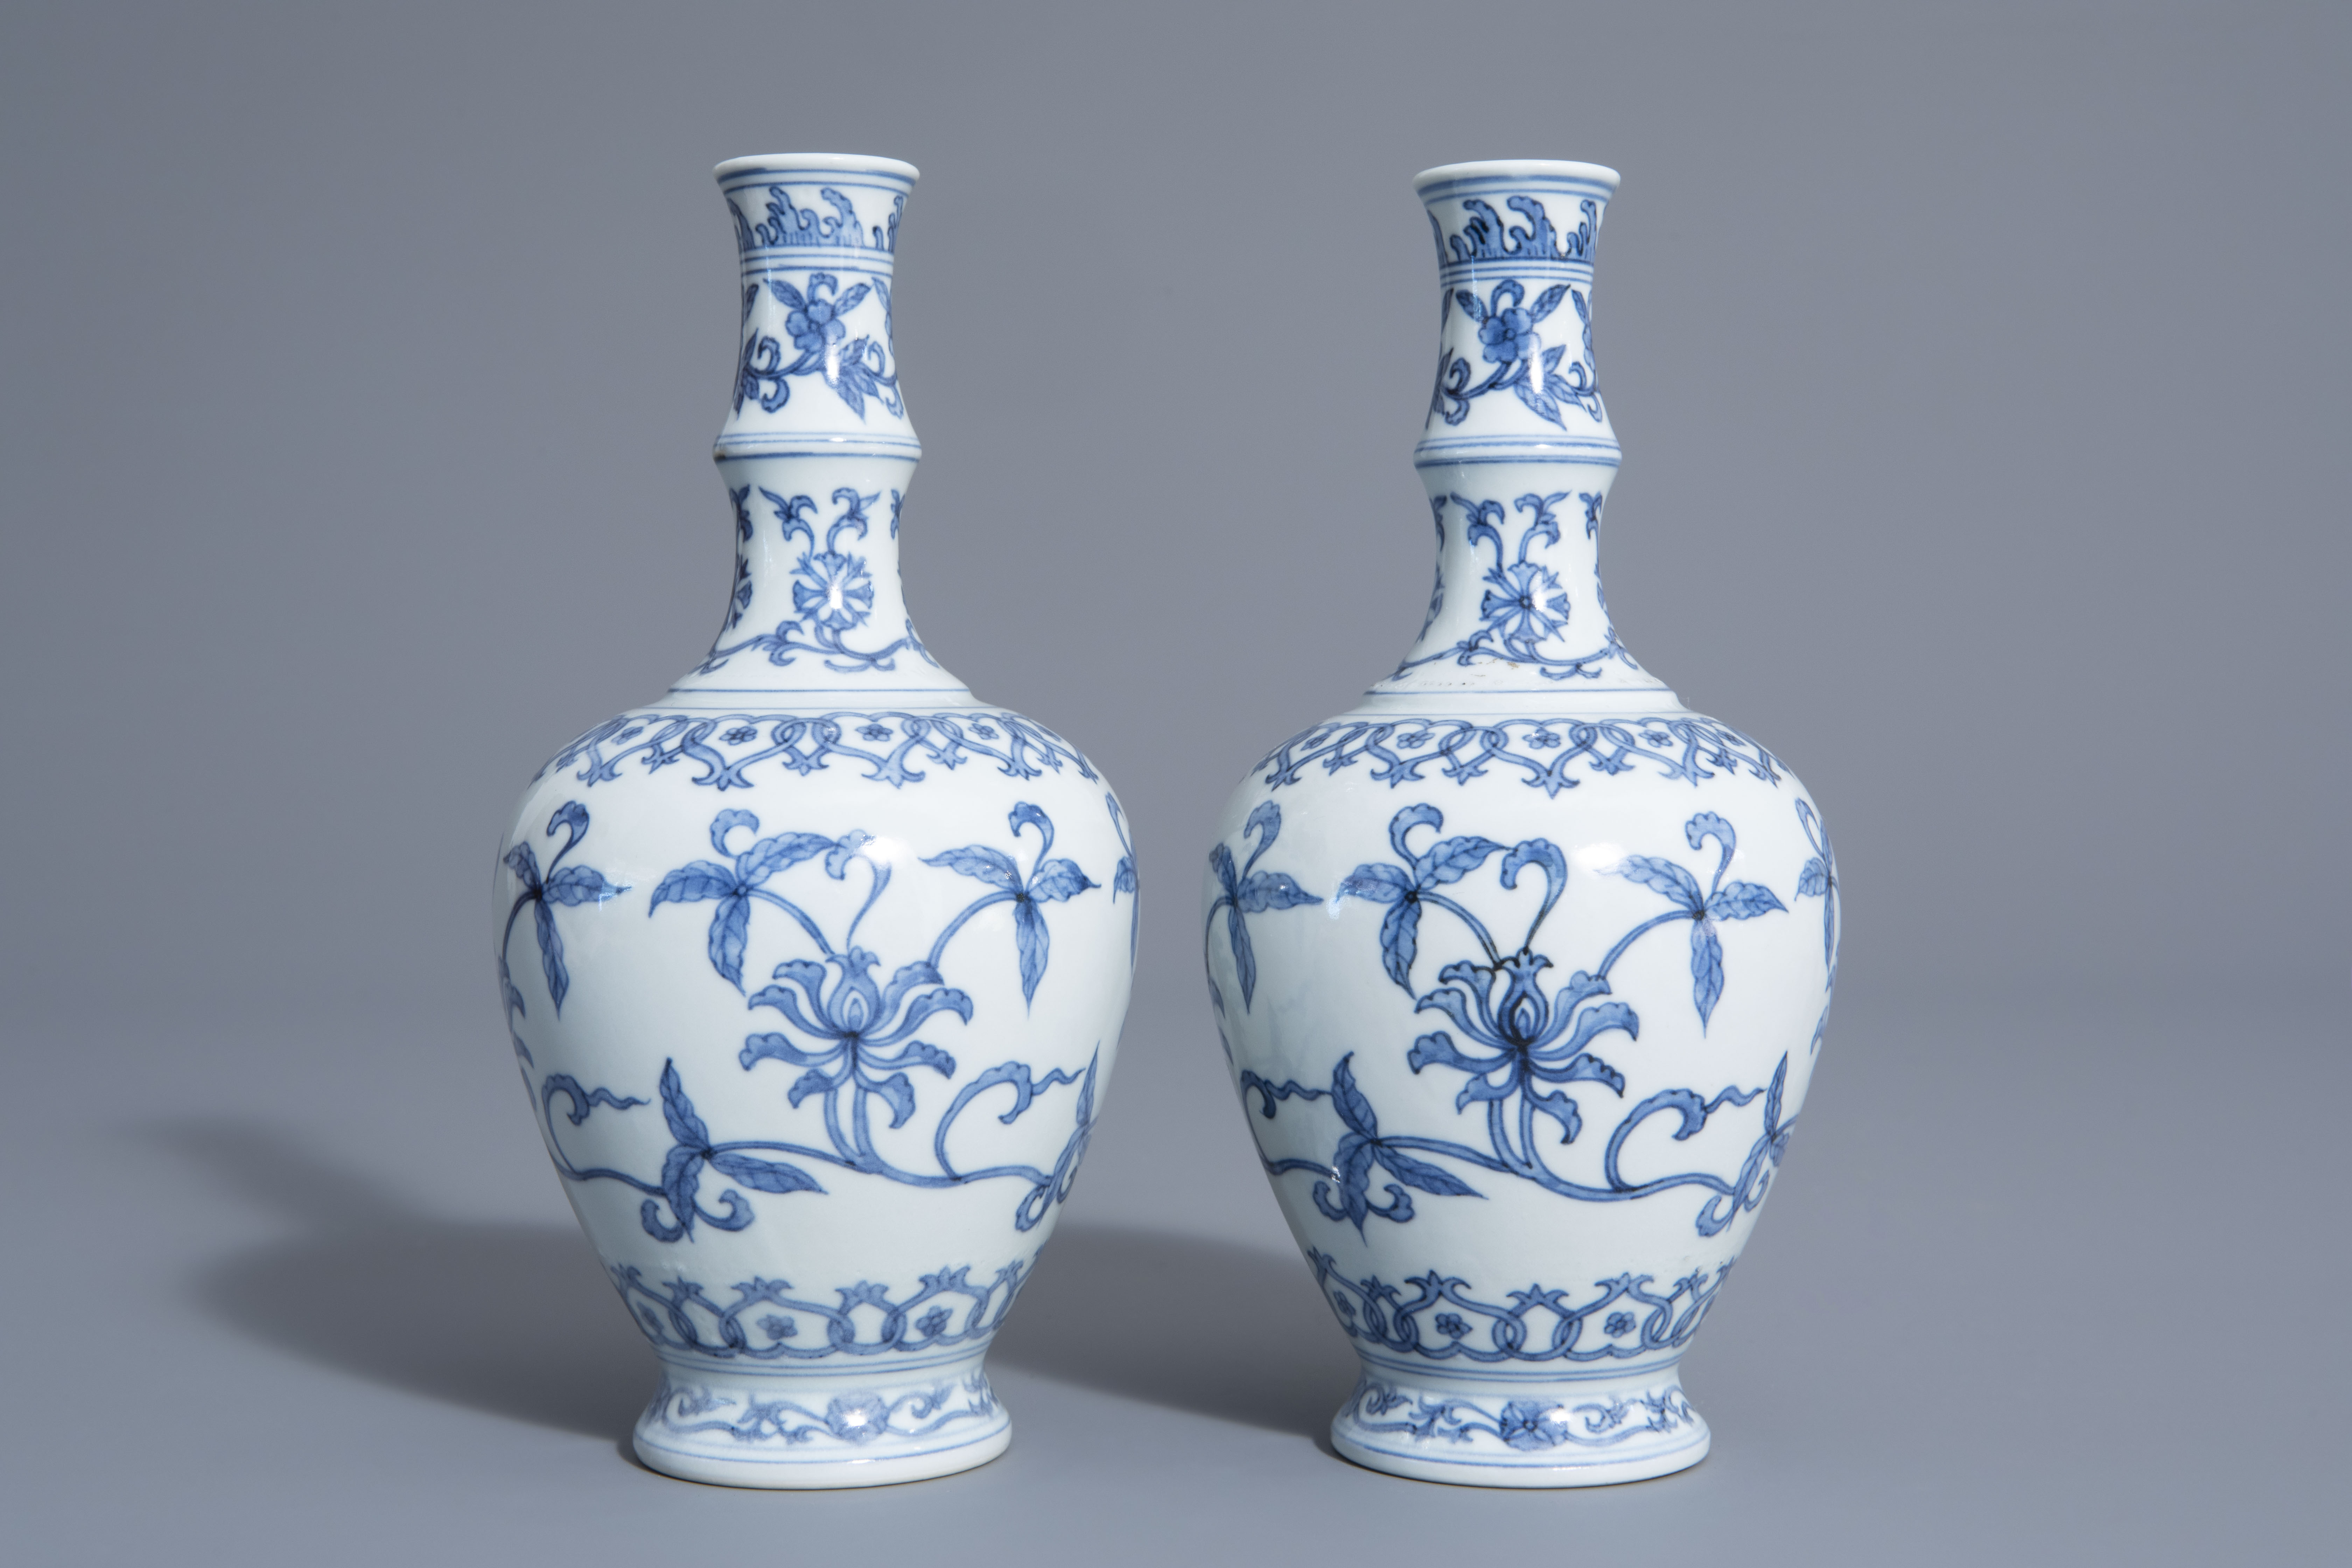 A pair of Chinese blue and white vases with floral design, Chenghua mark, 19th/20th C. - Image 3 of 6